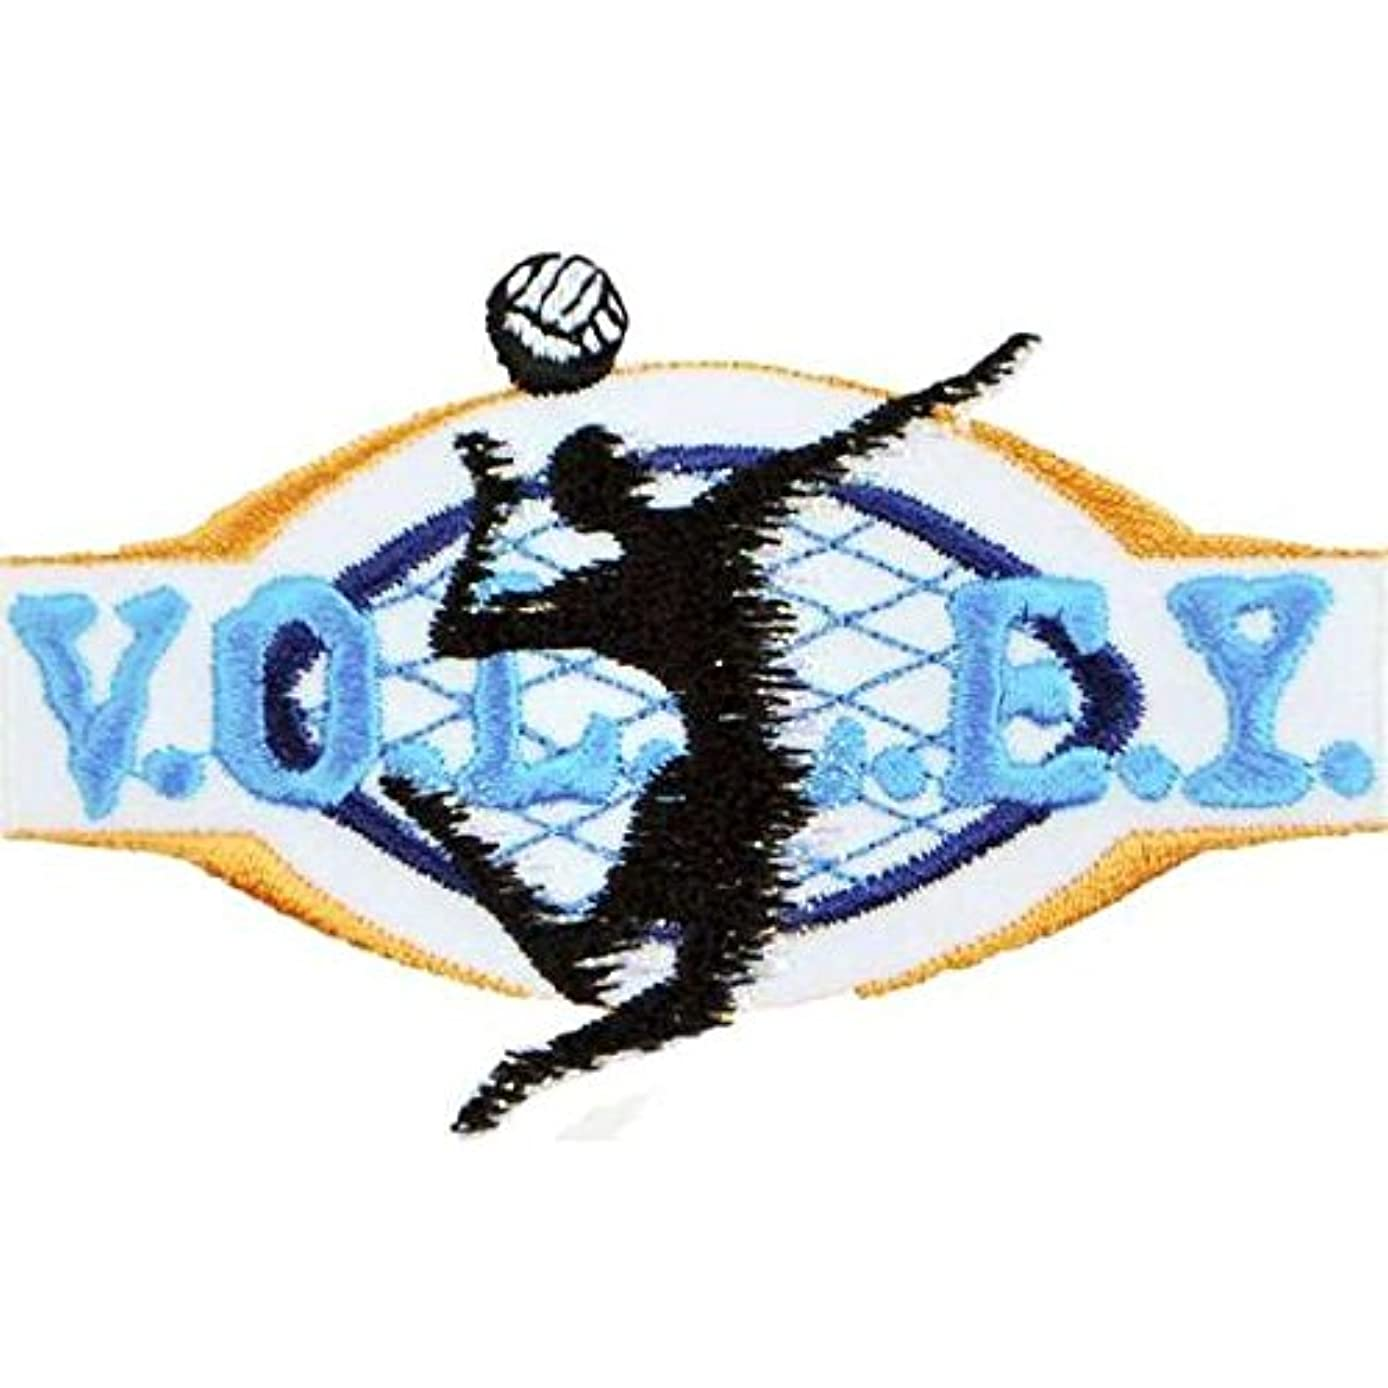 Expo International Volleyball Sport Embroidered Iron-on Applique Trim Embellishment, Multi-Color